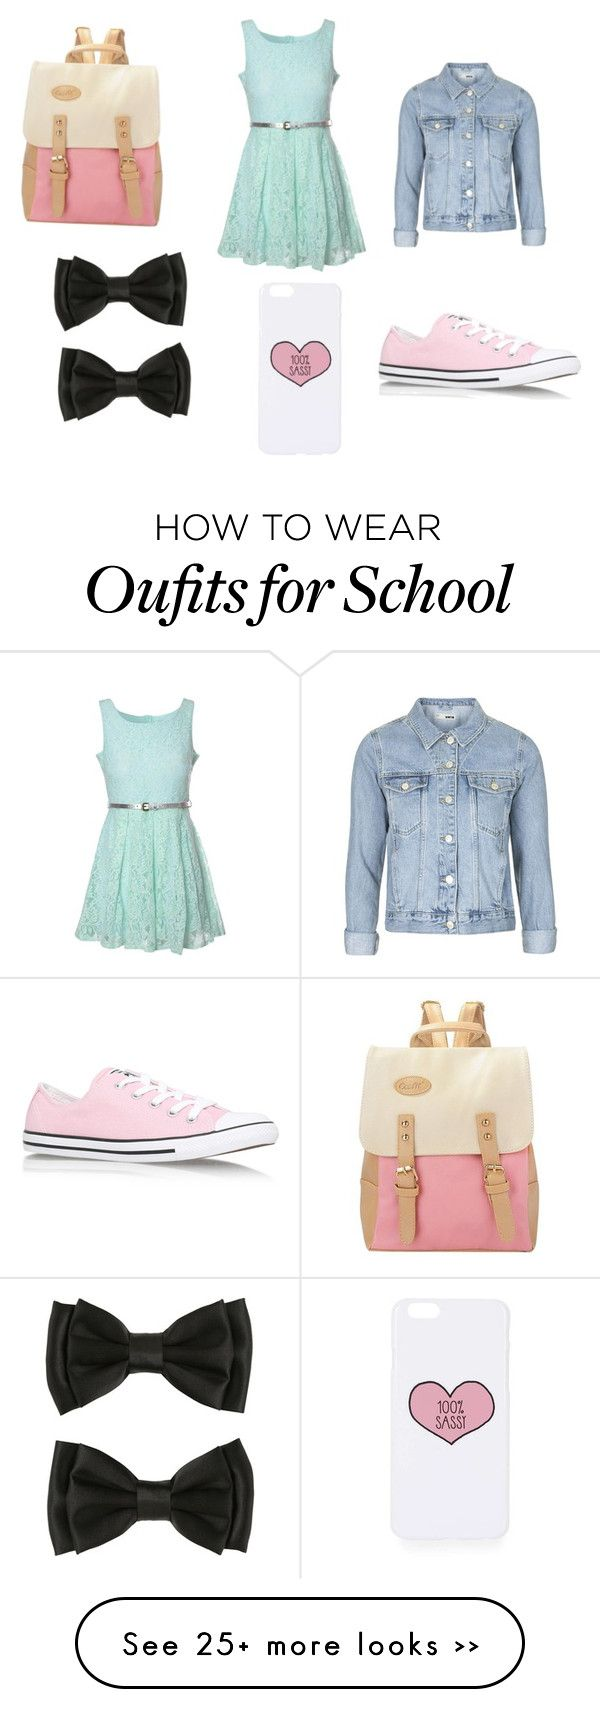 """Back to school 2015"" by amber-de-bleeckere on Polyvore featuring Glamorous, Topshop and Converse"